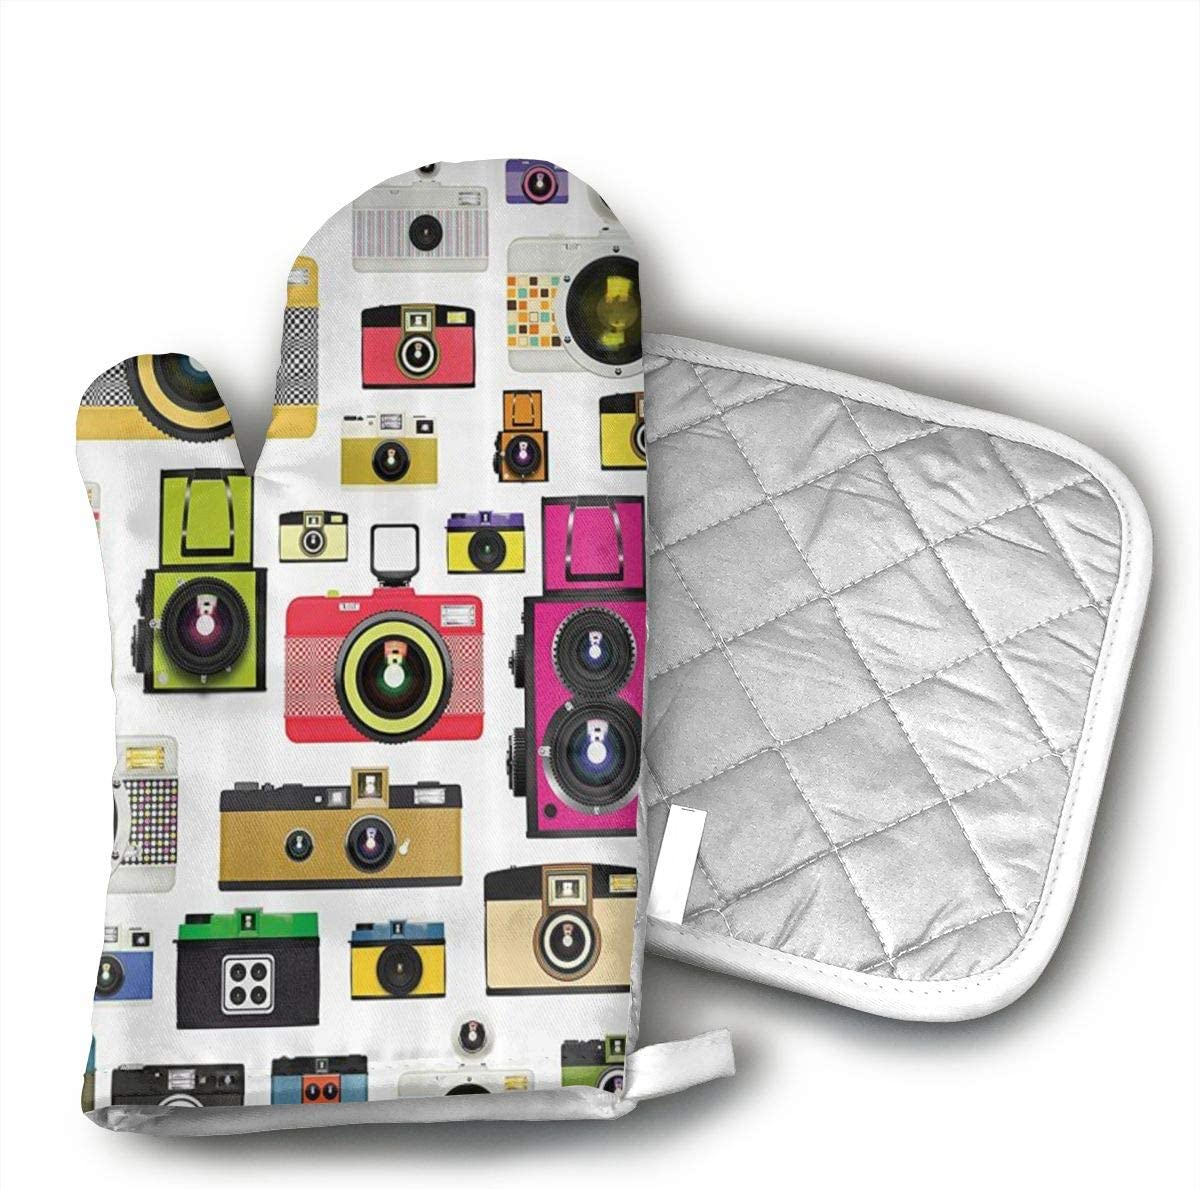 HGUIDHG DVIKH Photographic Camera Oven Mitts+Insulated Square Mat,Heat Resistant Kitchen Gloves Soft Insulated Deep Pockets, Non-Slip Handles